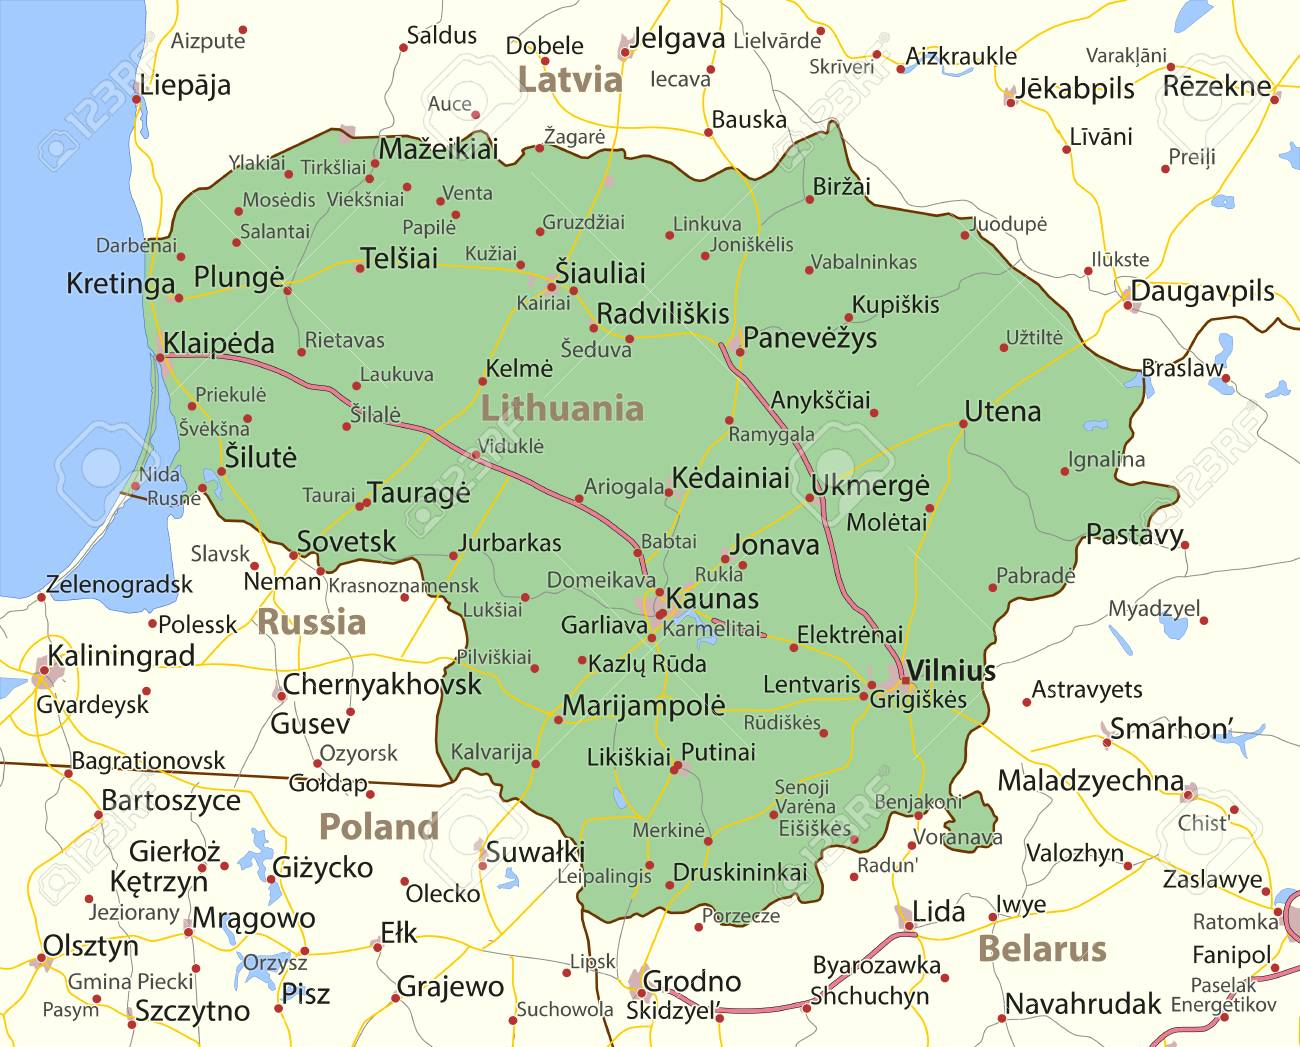 Map of Lithuania. Shows country borders, urban areas, place names and roads. - 95685420